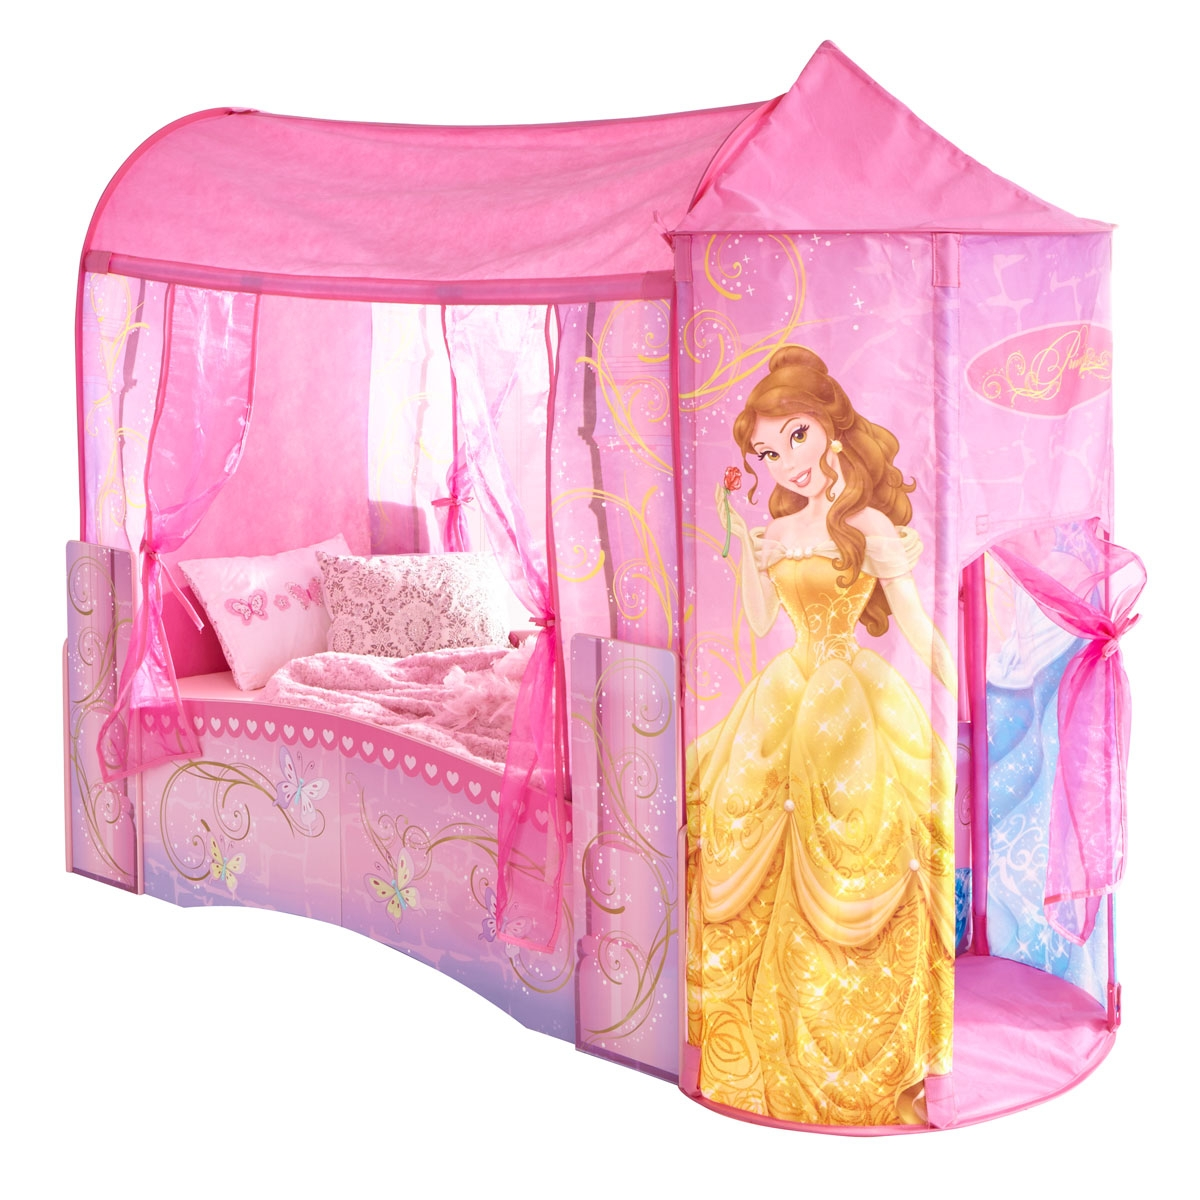 lit enfant ch teau princesse disney. Black Bedroom Furniture Sets. Home Design Ideas